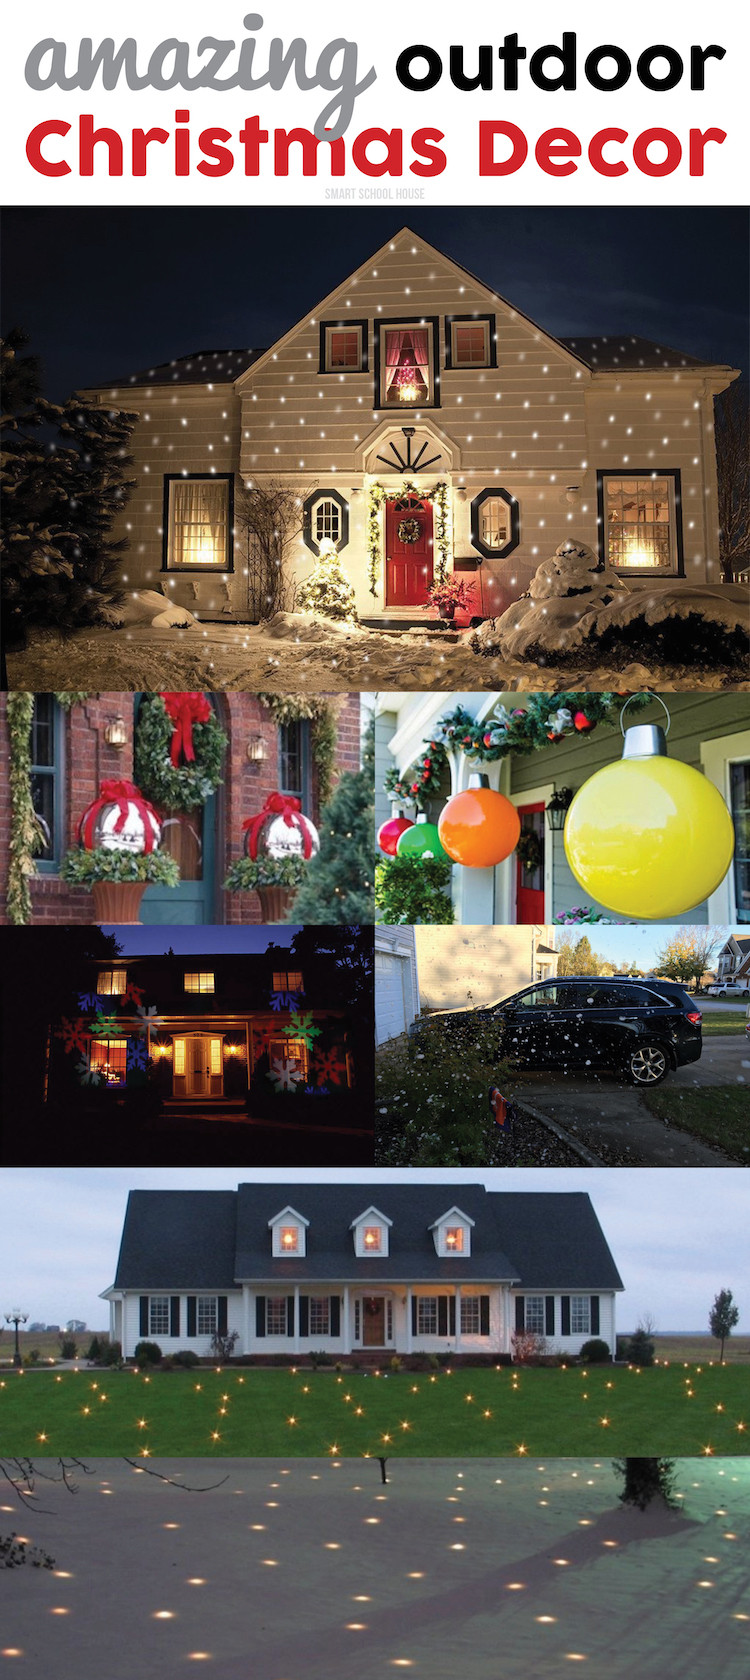 Best ideas about Outdoor Christmas Decor . Save or Pin Outdoor Christmas Decor Now.